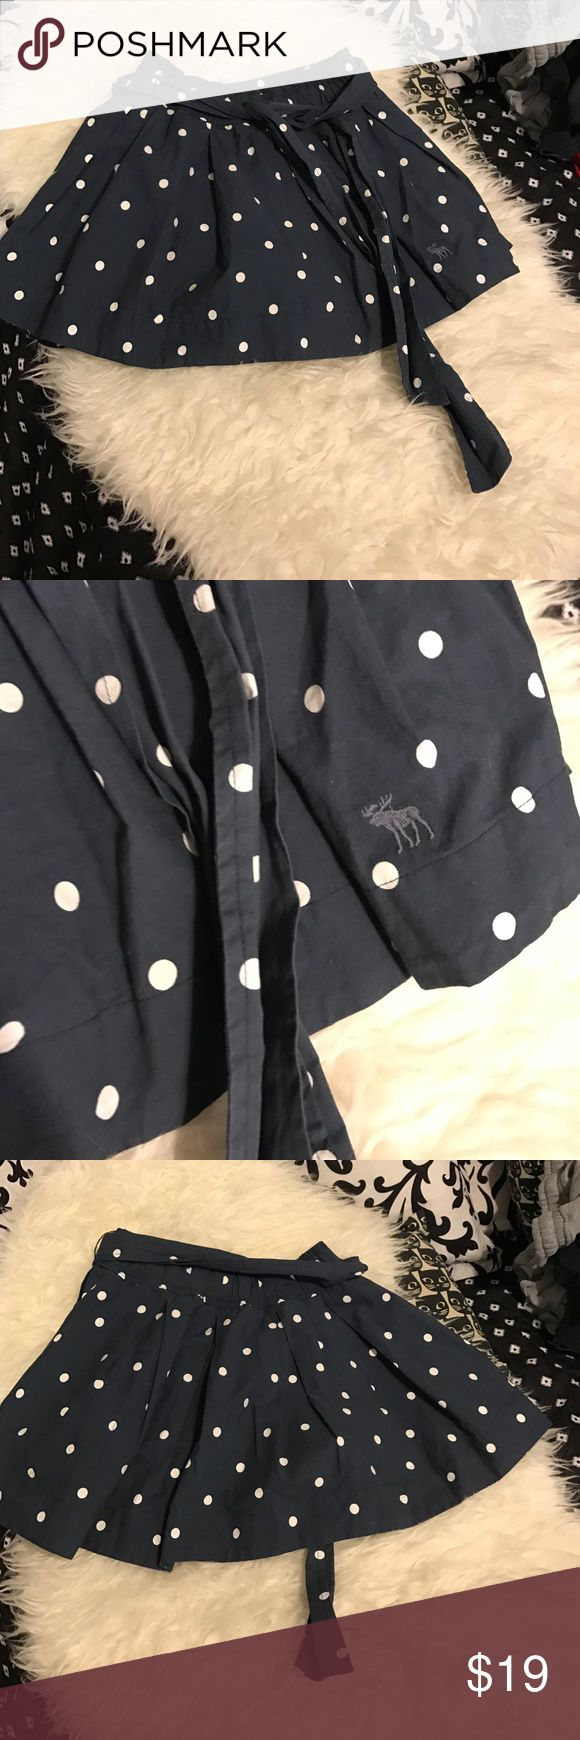 Abercrombie and fitch skirt Abercrombie and fitch skirt Abercrombie & Fitch Skirts